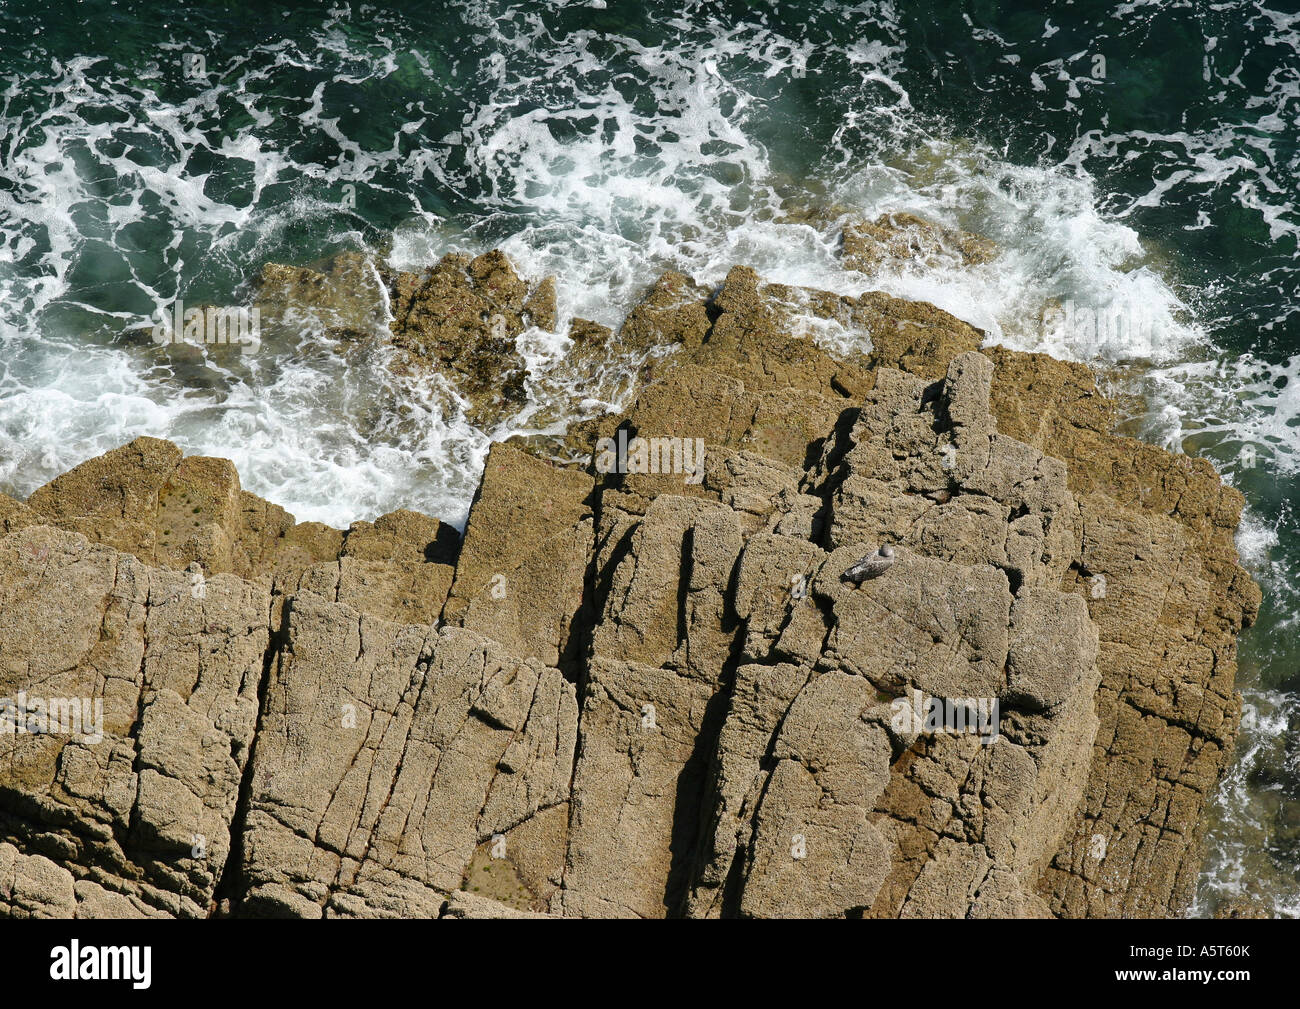 Ile de Brehat, Brittany, France, coastal rock formations, high angle view - Stock Image